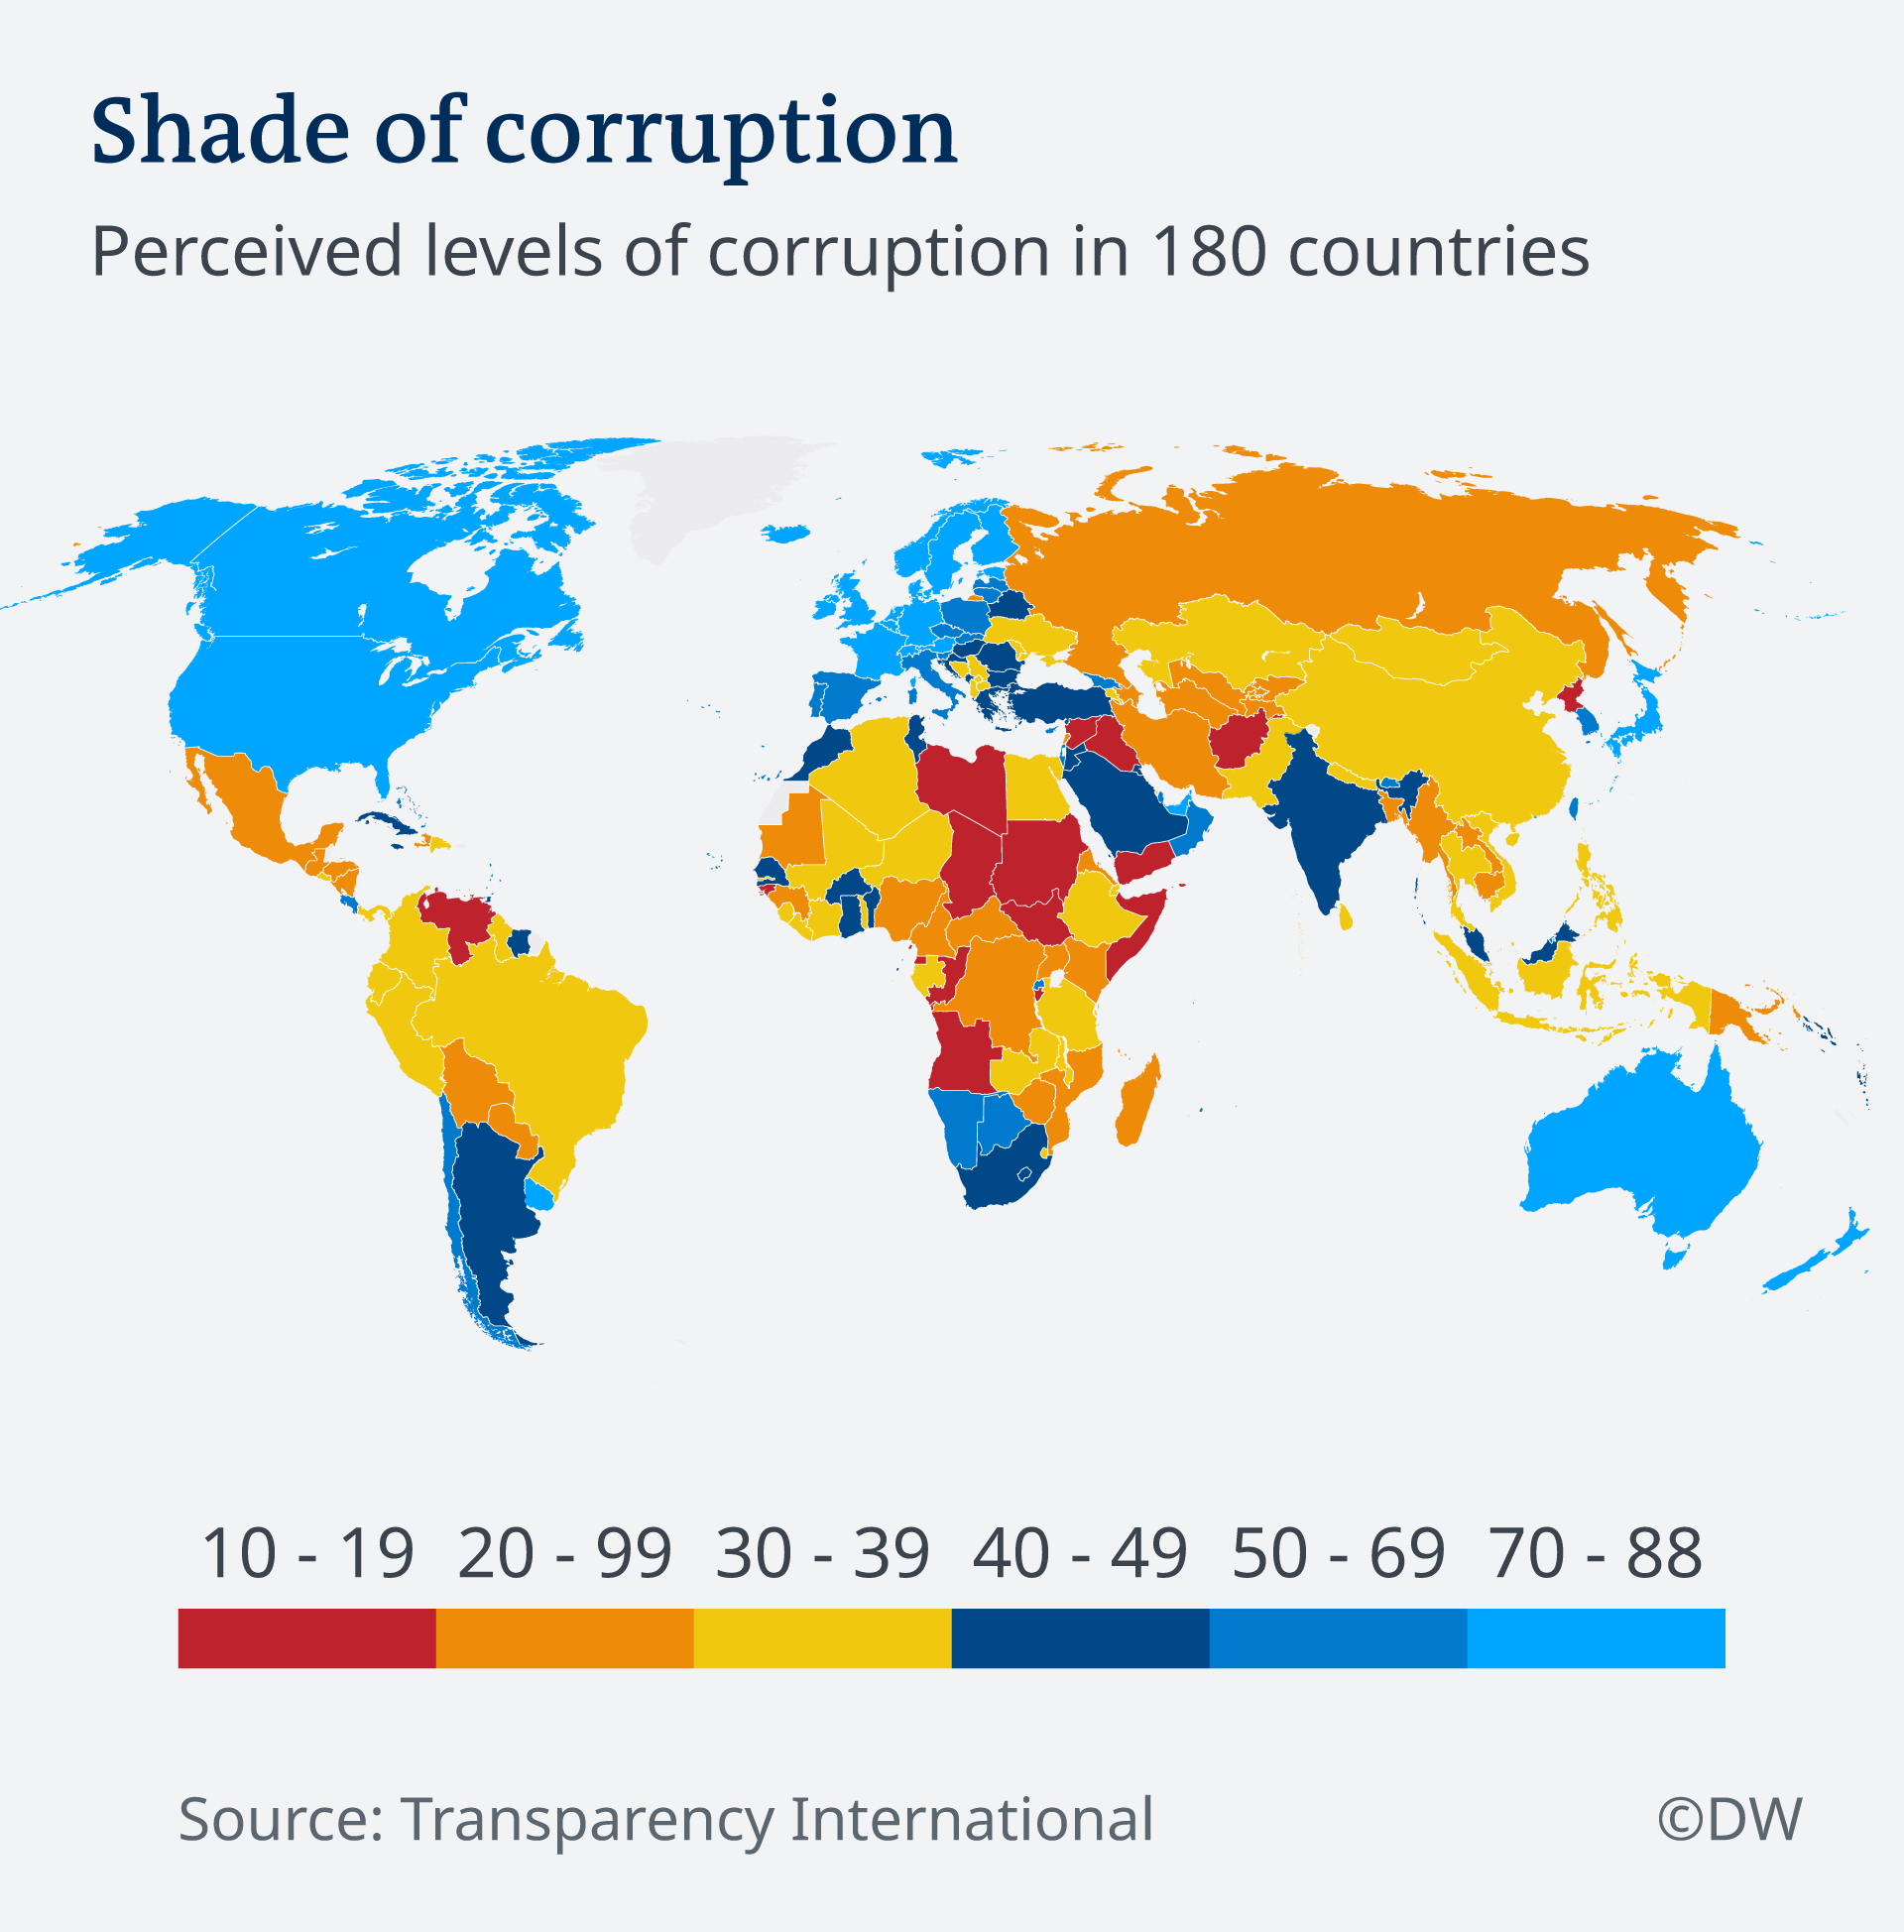 Perceived levels of corruption, according to TI